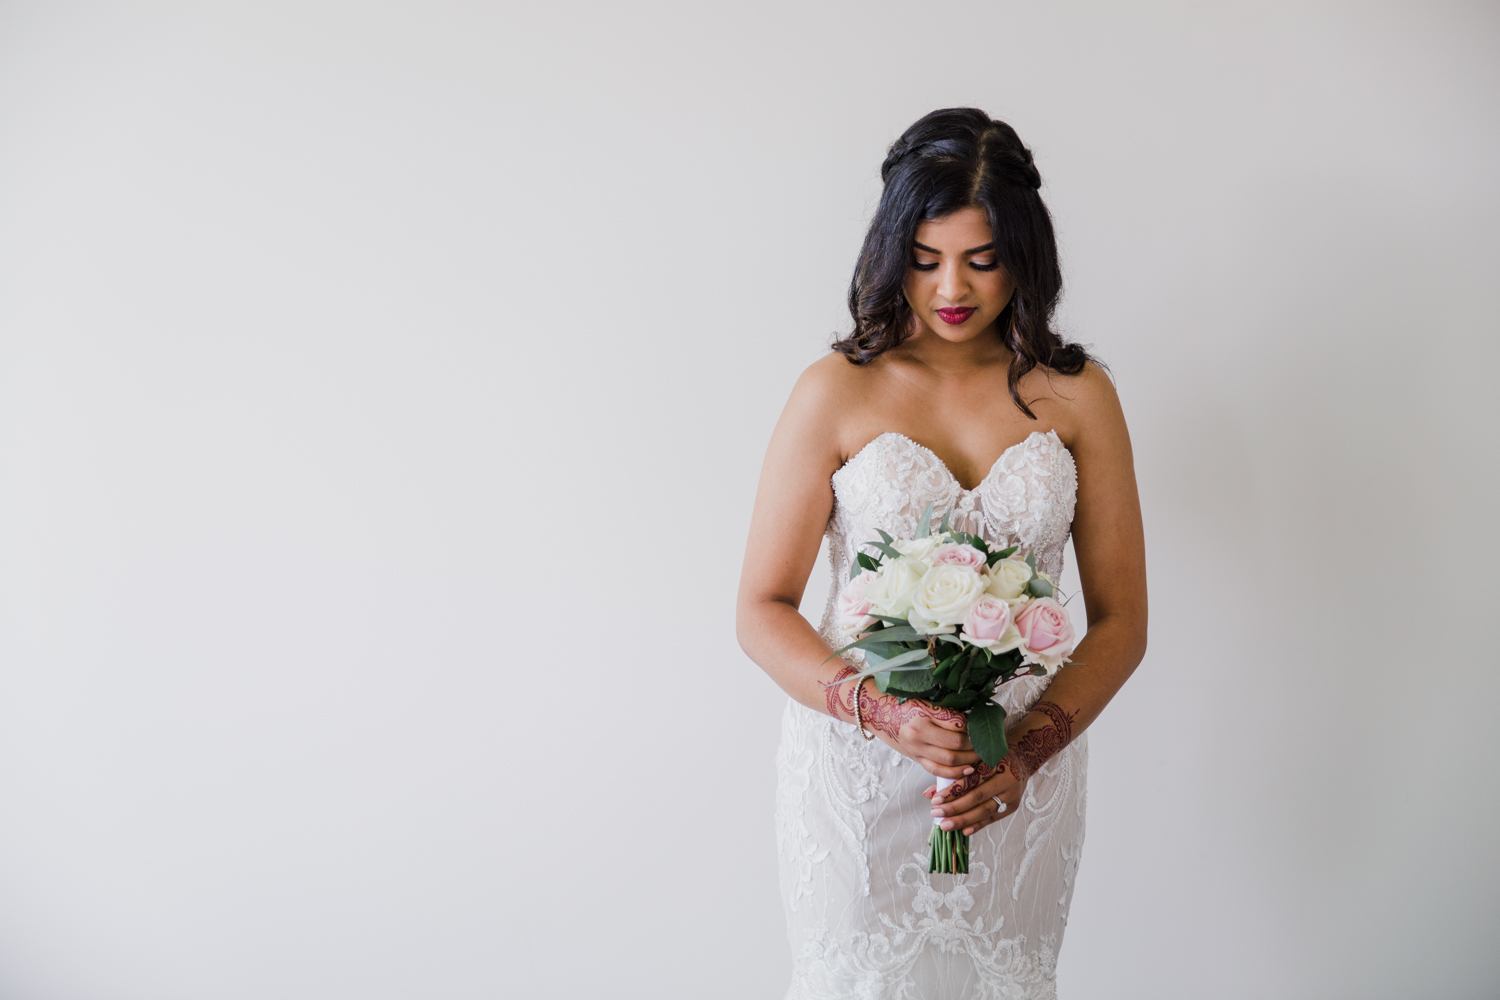 A stunning bridal portrait of a Bride taken just before leaving home for the wedding. This image was taken by Mala Photography, an Auckland based wedding photographer. The wedding was at Markovina Vineyard Estate In Kumeu, Auckland.